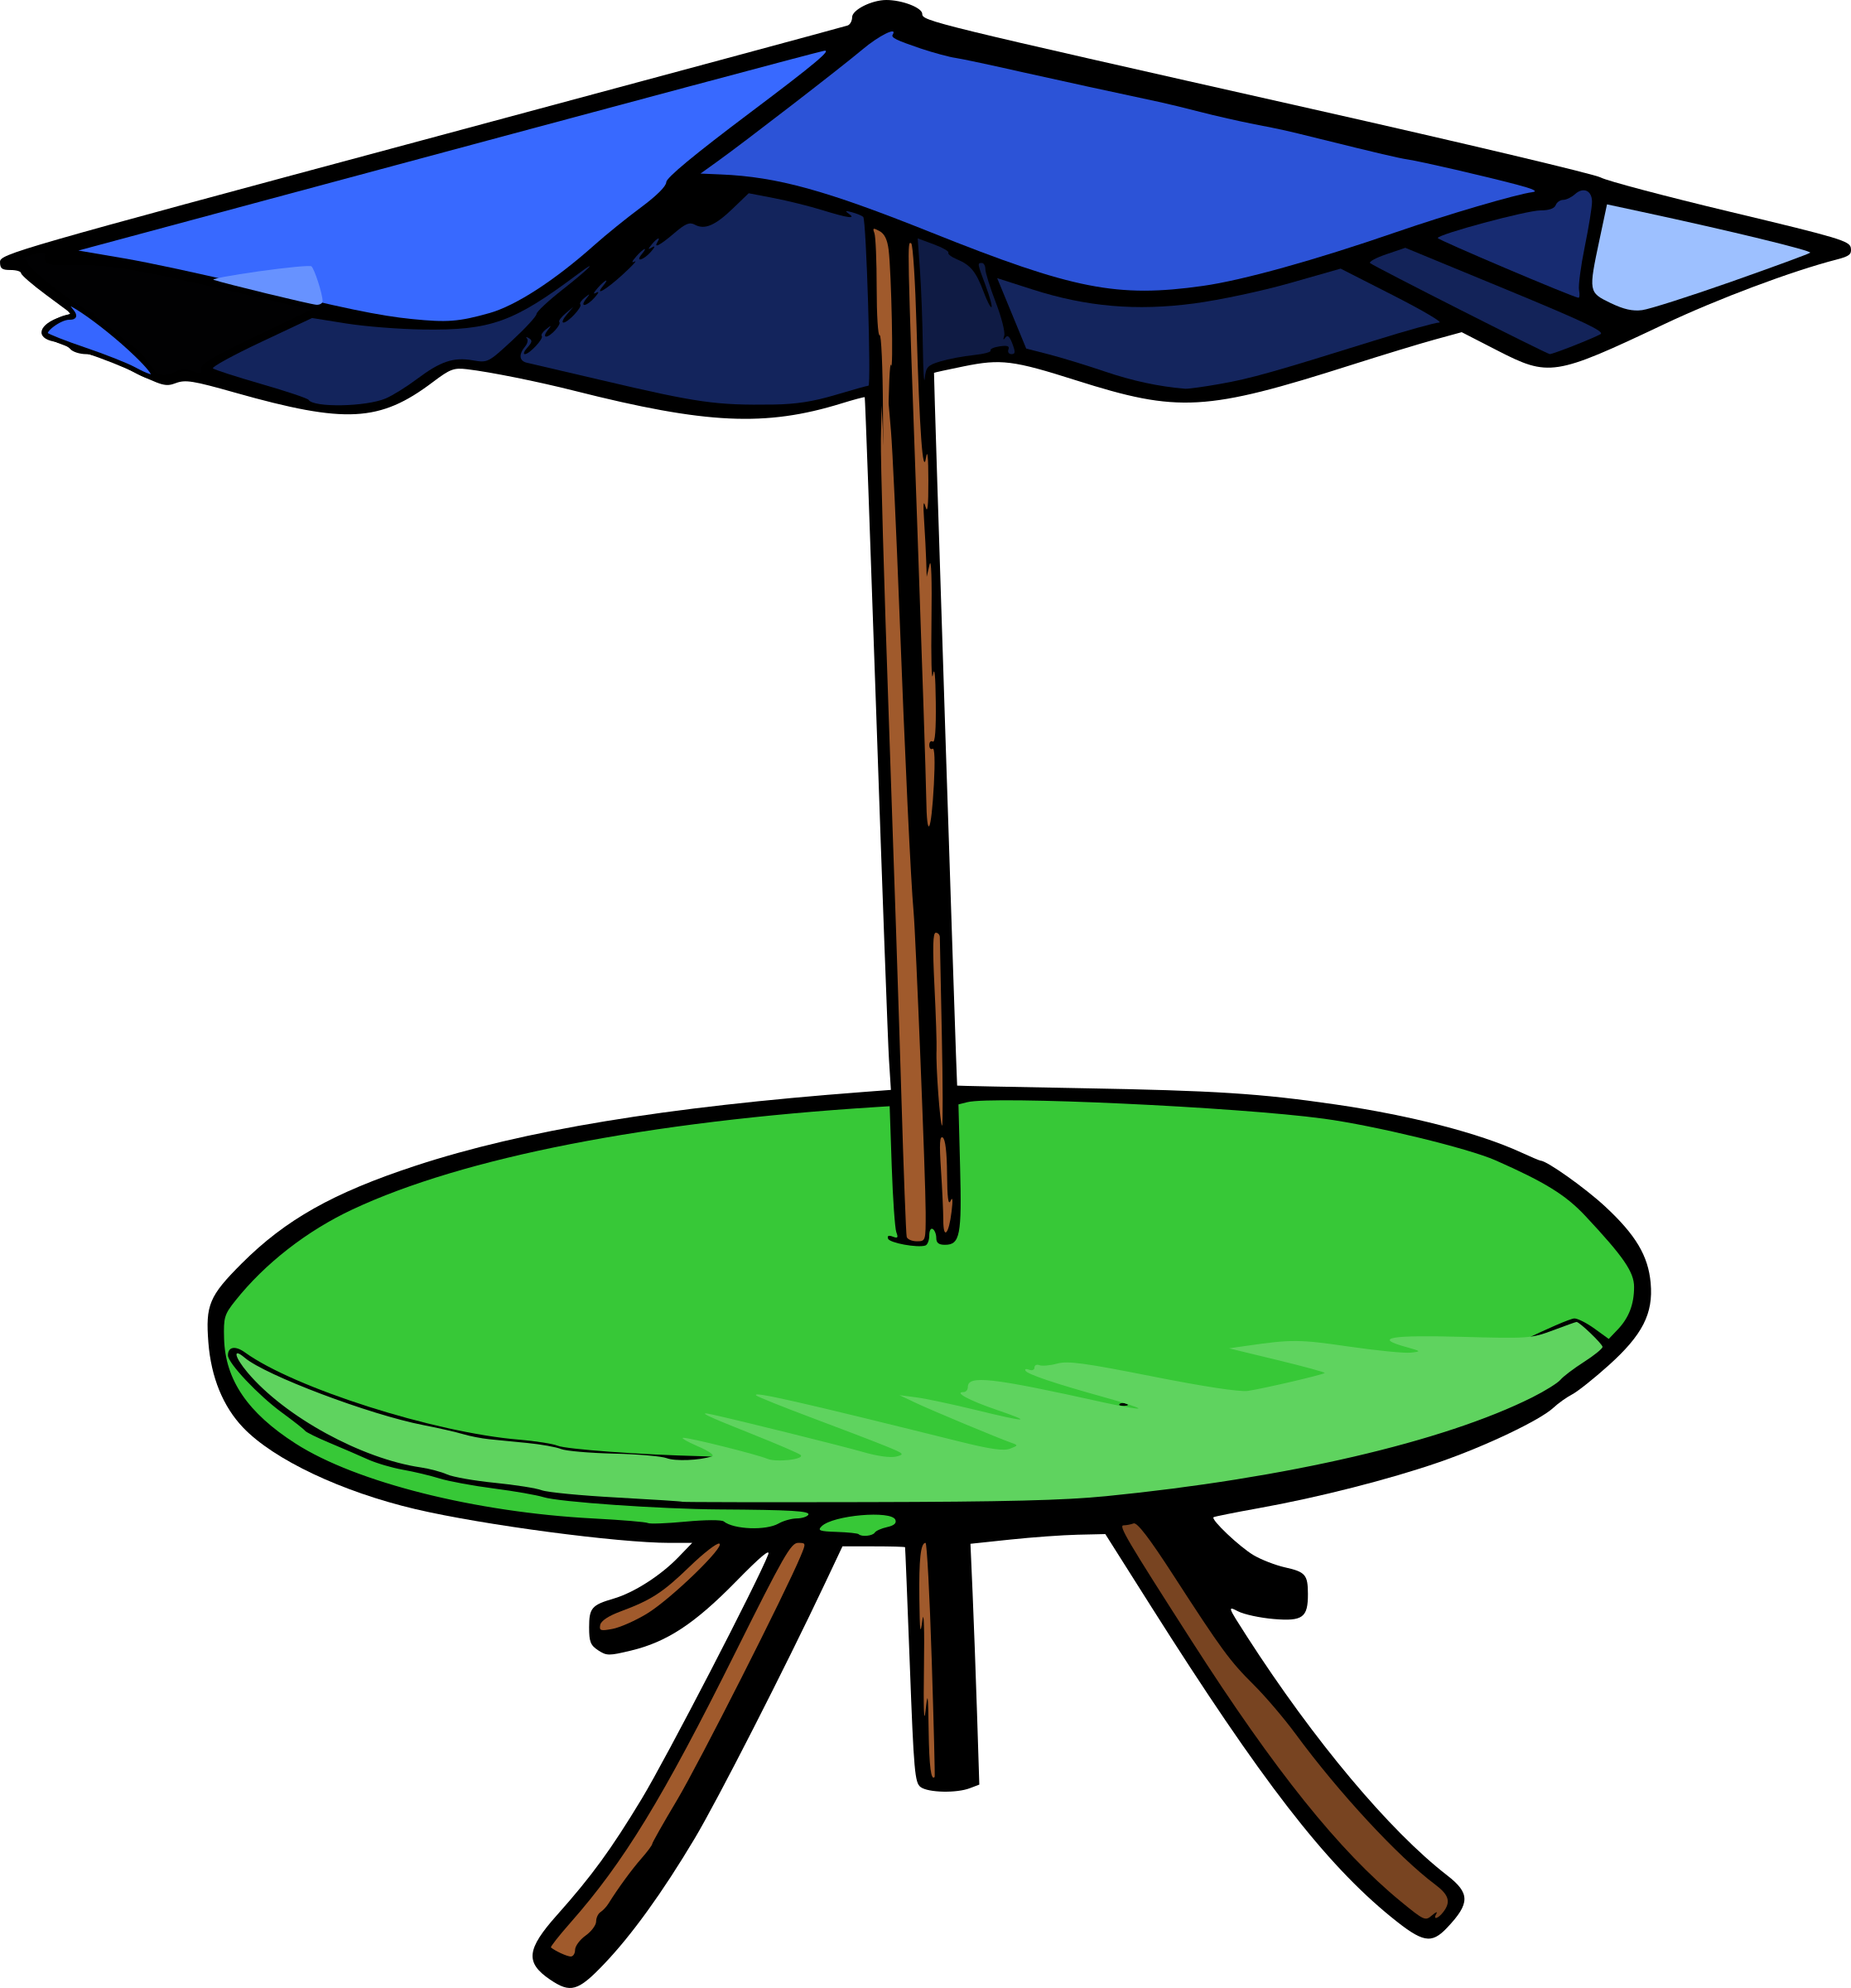 Table Umbrella by mazeo